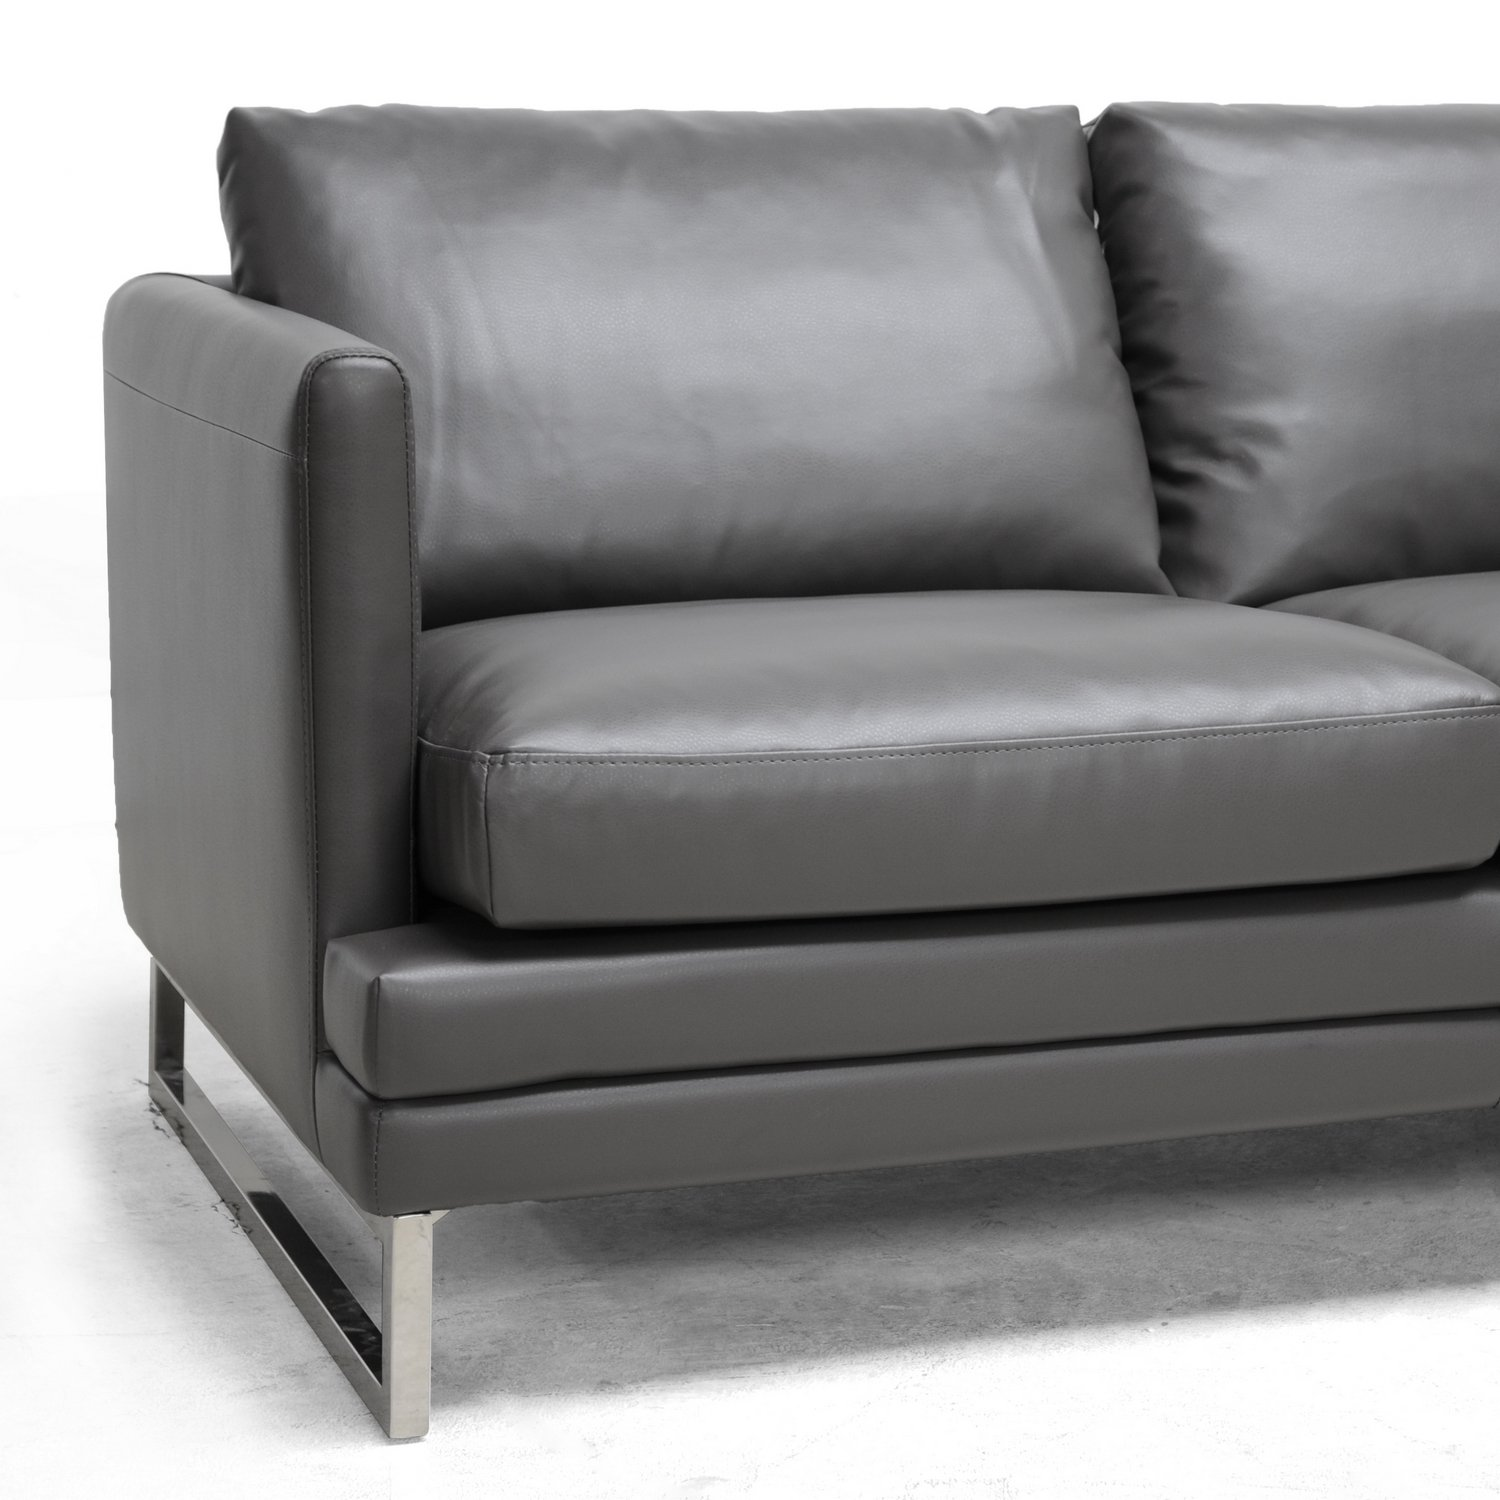 amazoncom baxton studio dakota leather modern sofa pewter gray kitchen dining. amazoncom baxton studio dakota leather modern sofa pewter gray